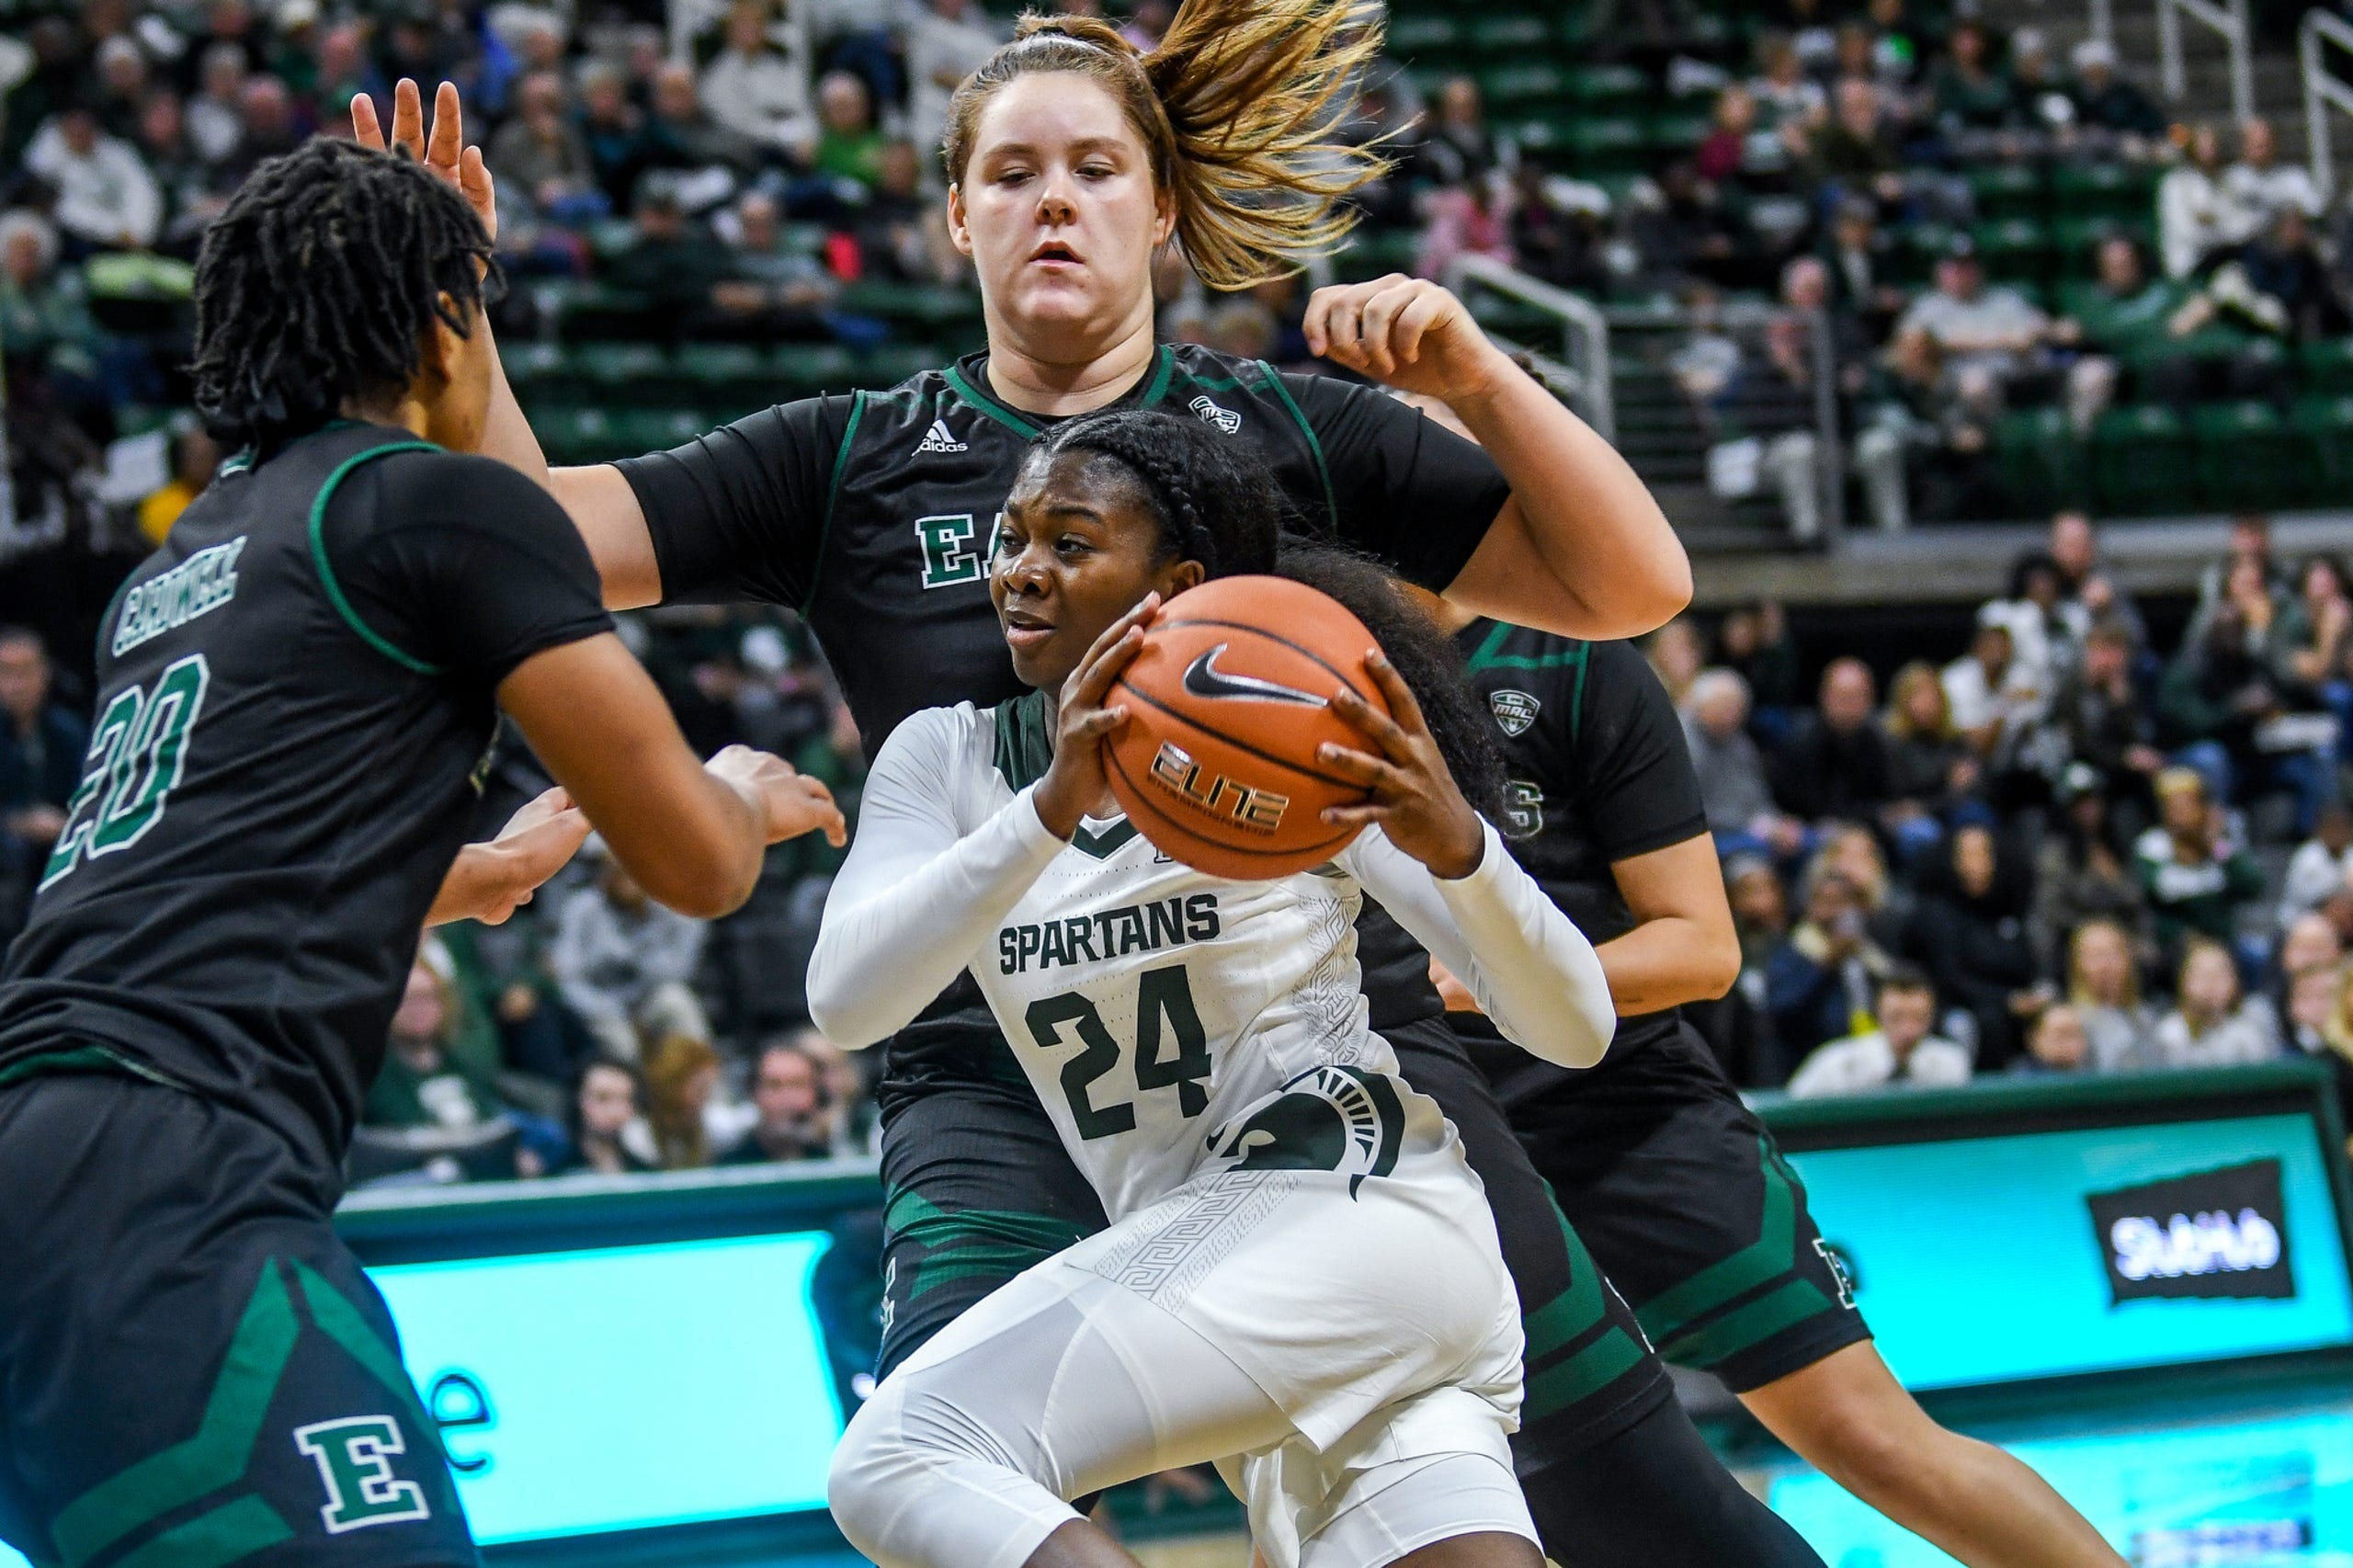 Michigan State's Nia Clouden, center, drives to the basket as Eastern Michigan's Autumn Hudson defends during the  first quarter on Tuesday, Nov. 5, 2019, at the Breslin Center in East Lansing.